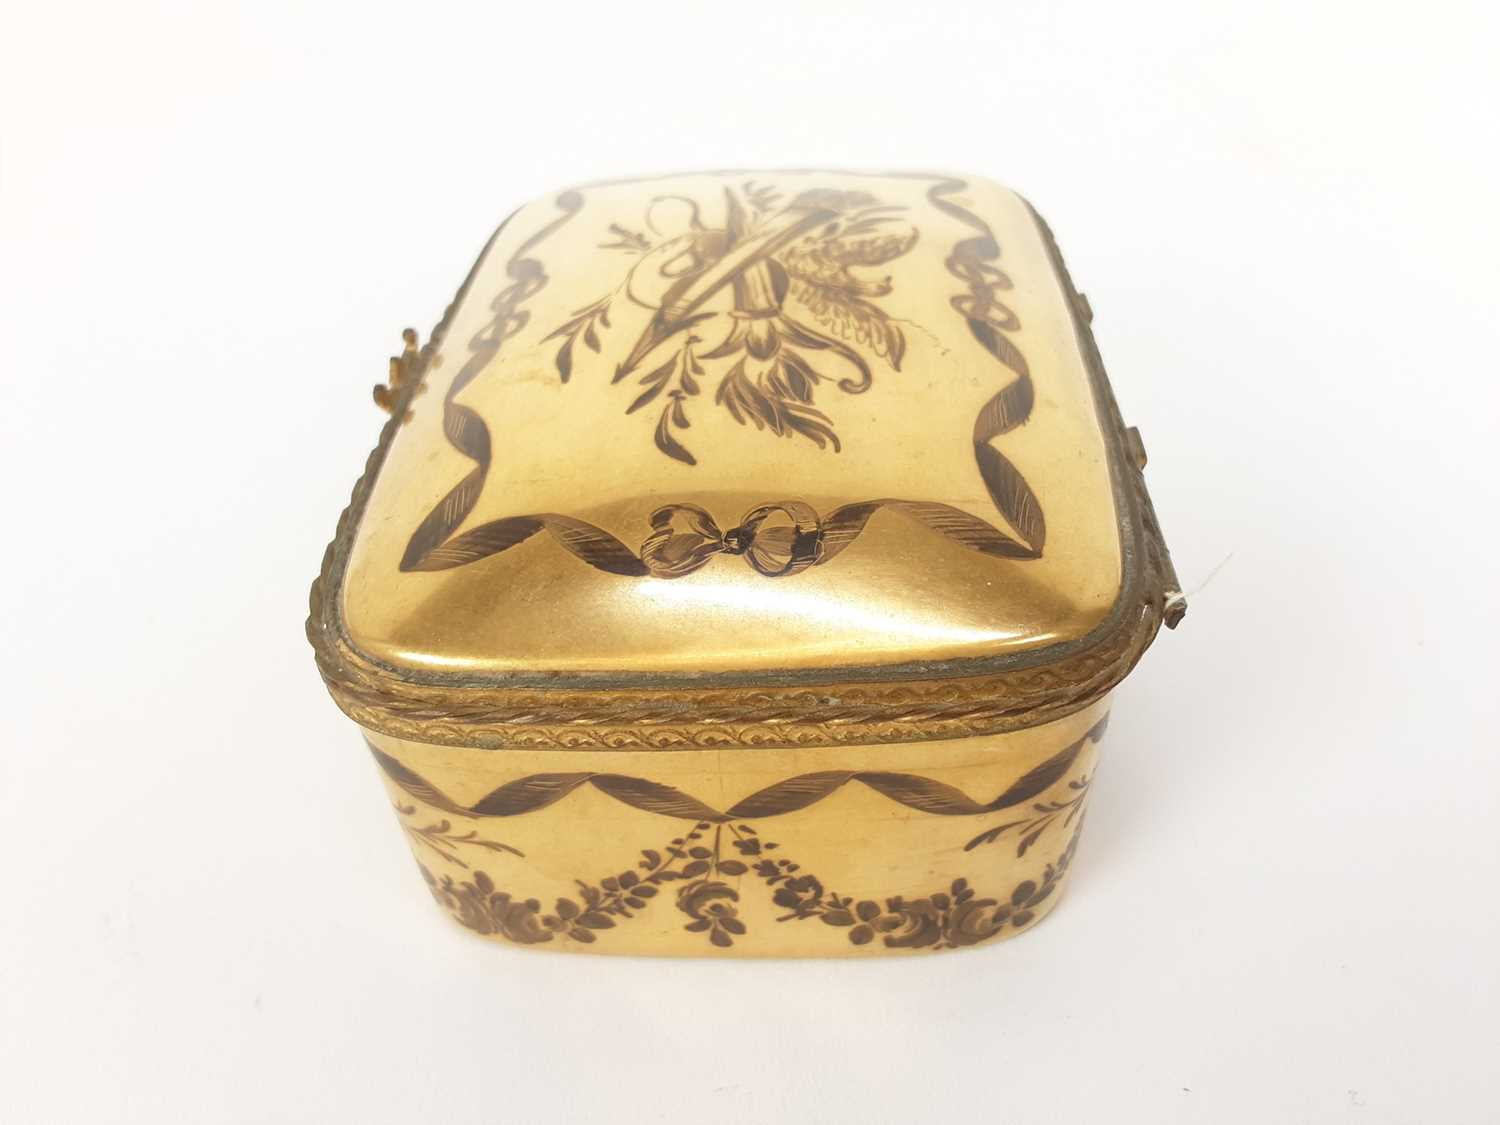 French ormolu-mounted porcelain box, late 19th century, probably Limoges, gilded and enamelled en gr - Image 2 of 7